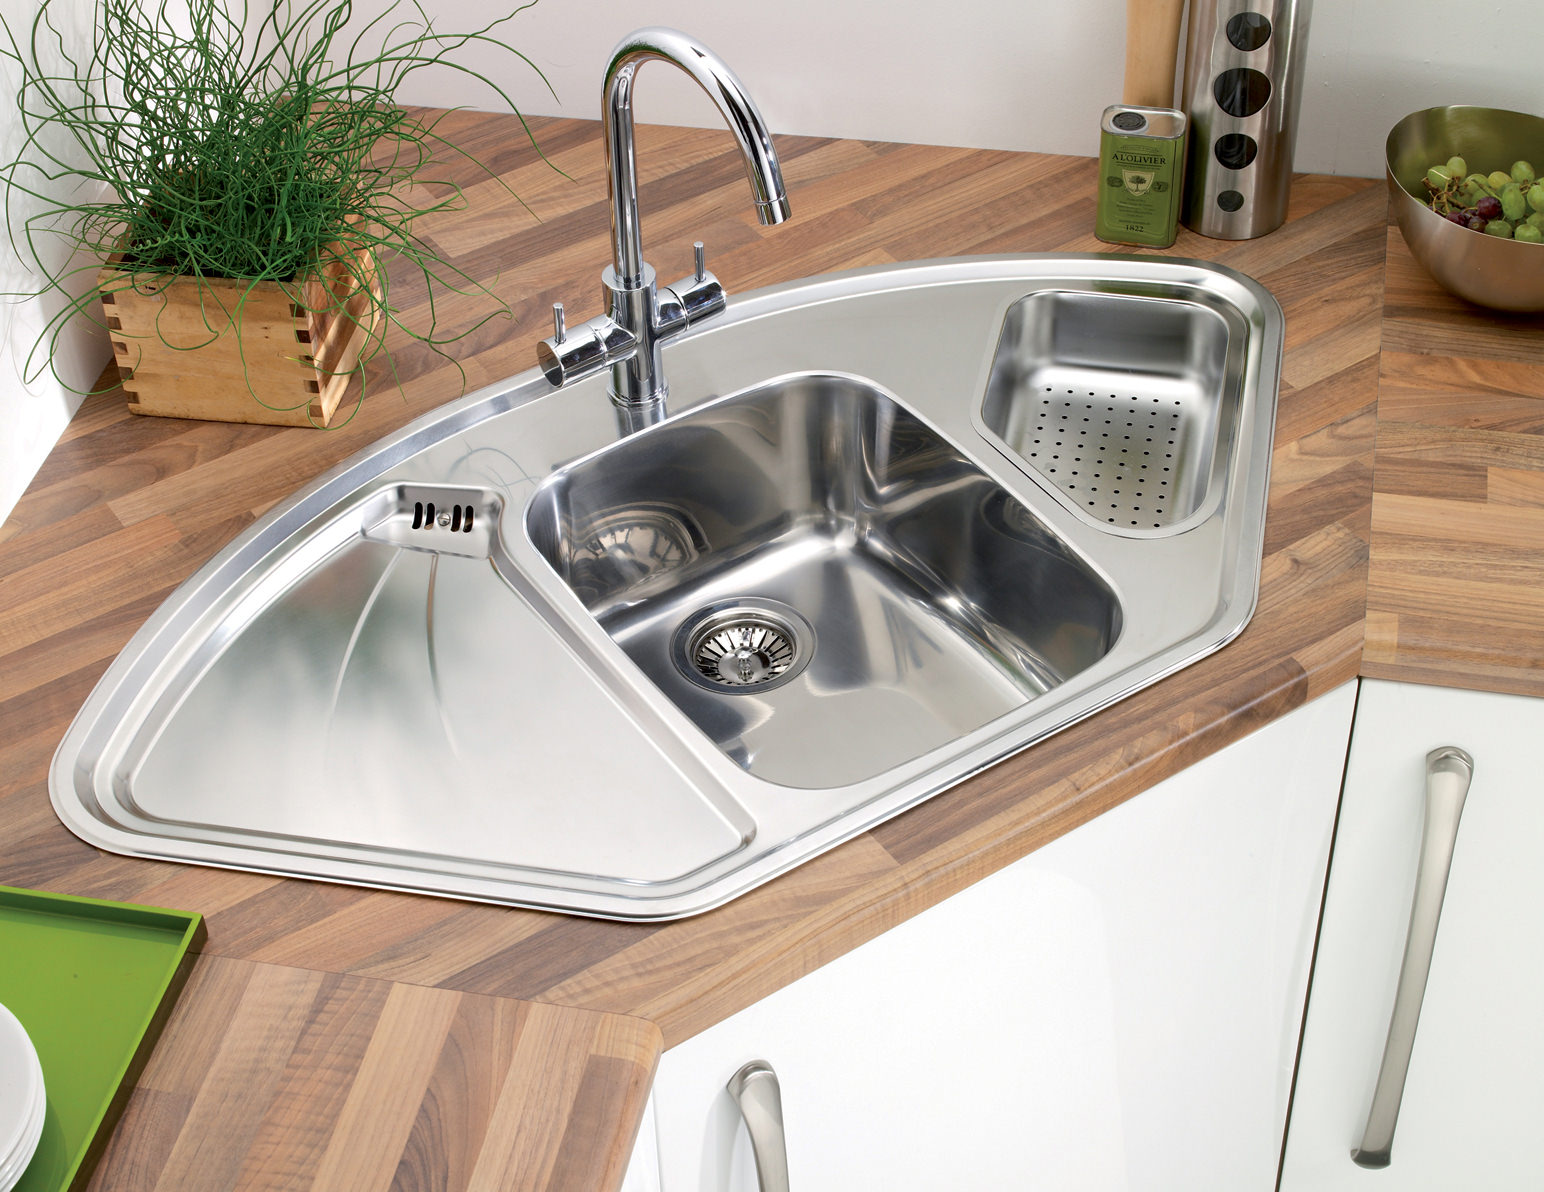 Corner Kitchen Sink Uk : Astracast Lausanne 1.5 Bowl Polished Stainless Steel Corner Inset Sink